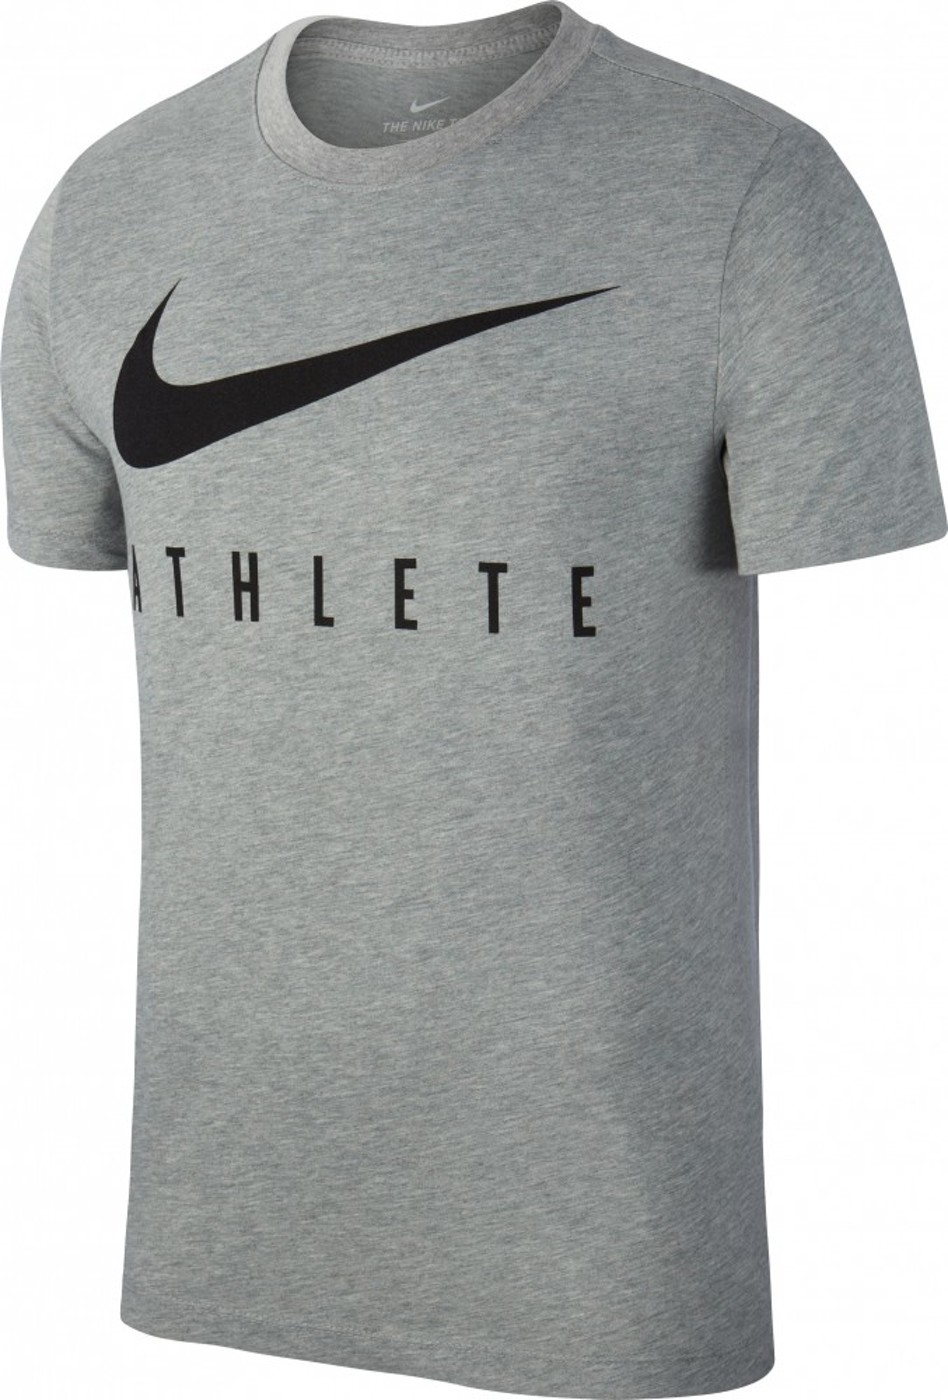 Nike Dri-FIT Training T- - Herren